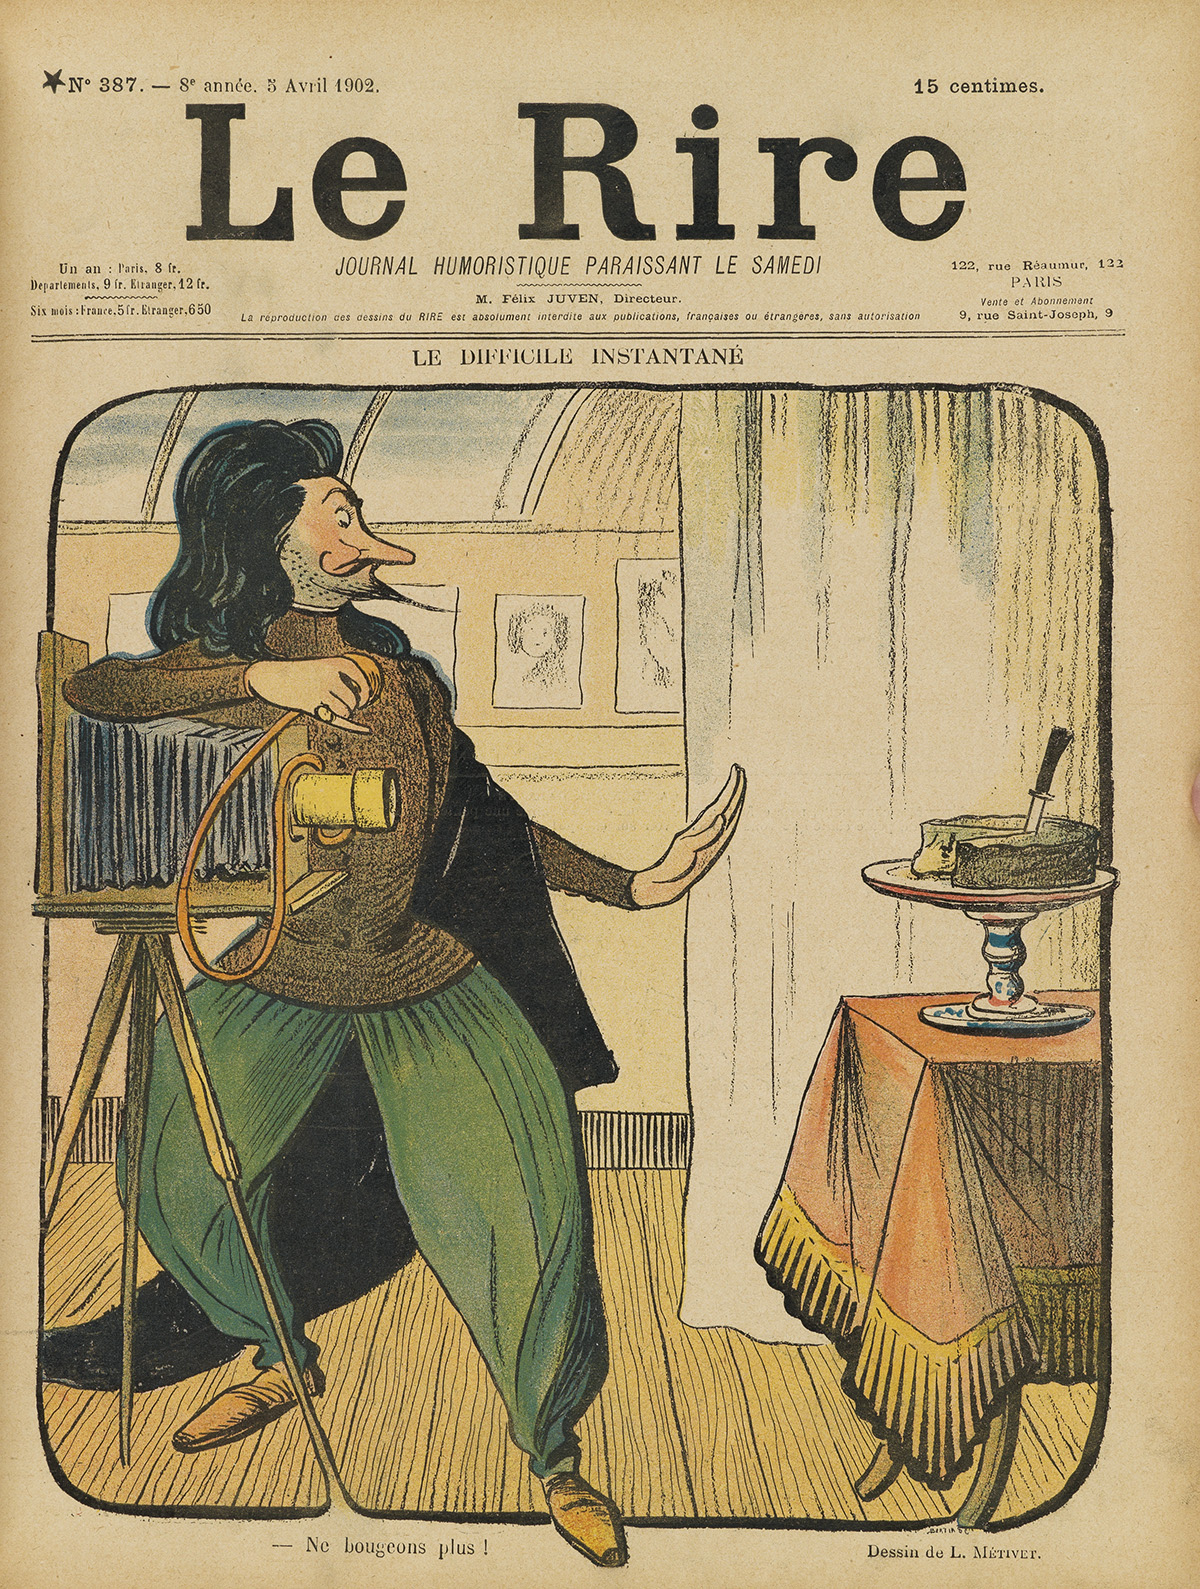 VARIOUS-ARTISTS-LE-RIRE-Three-bound-volumes-1897-1902-12x9-i